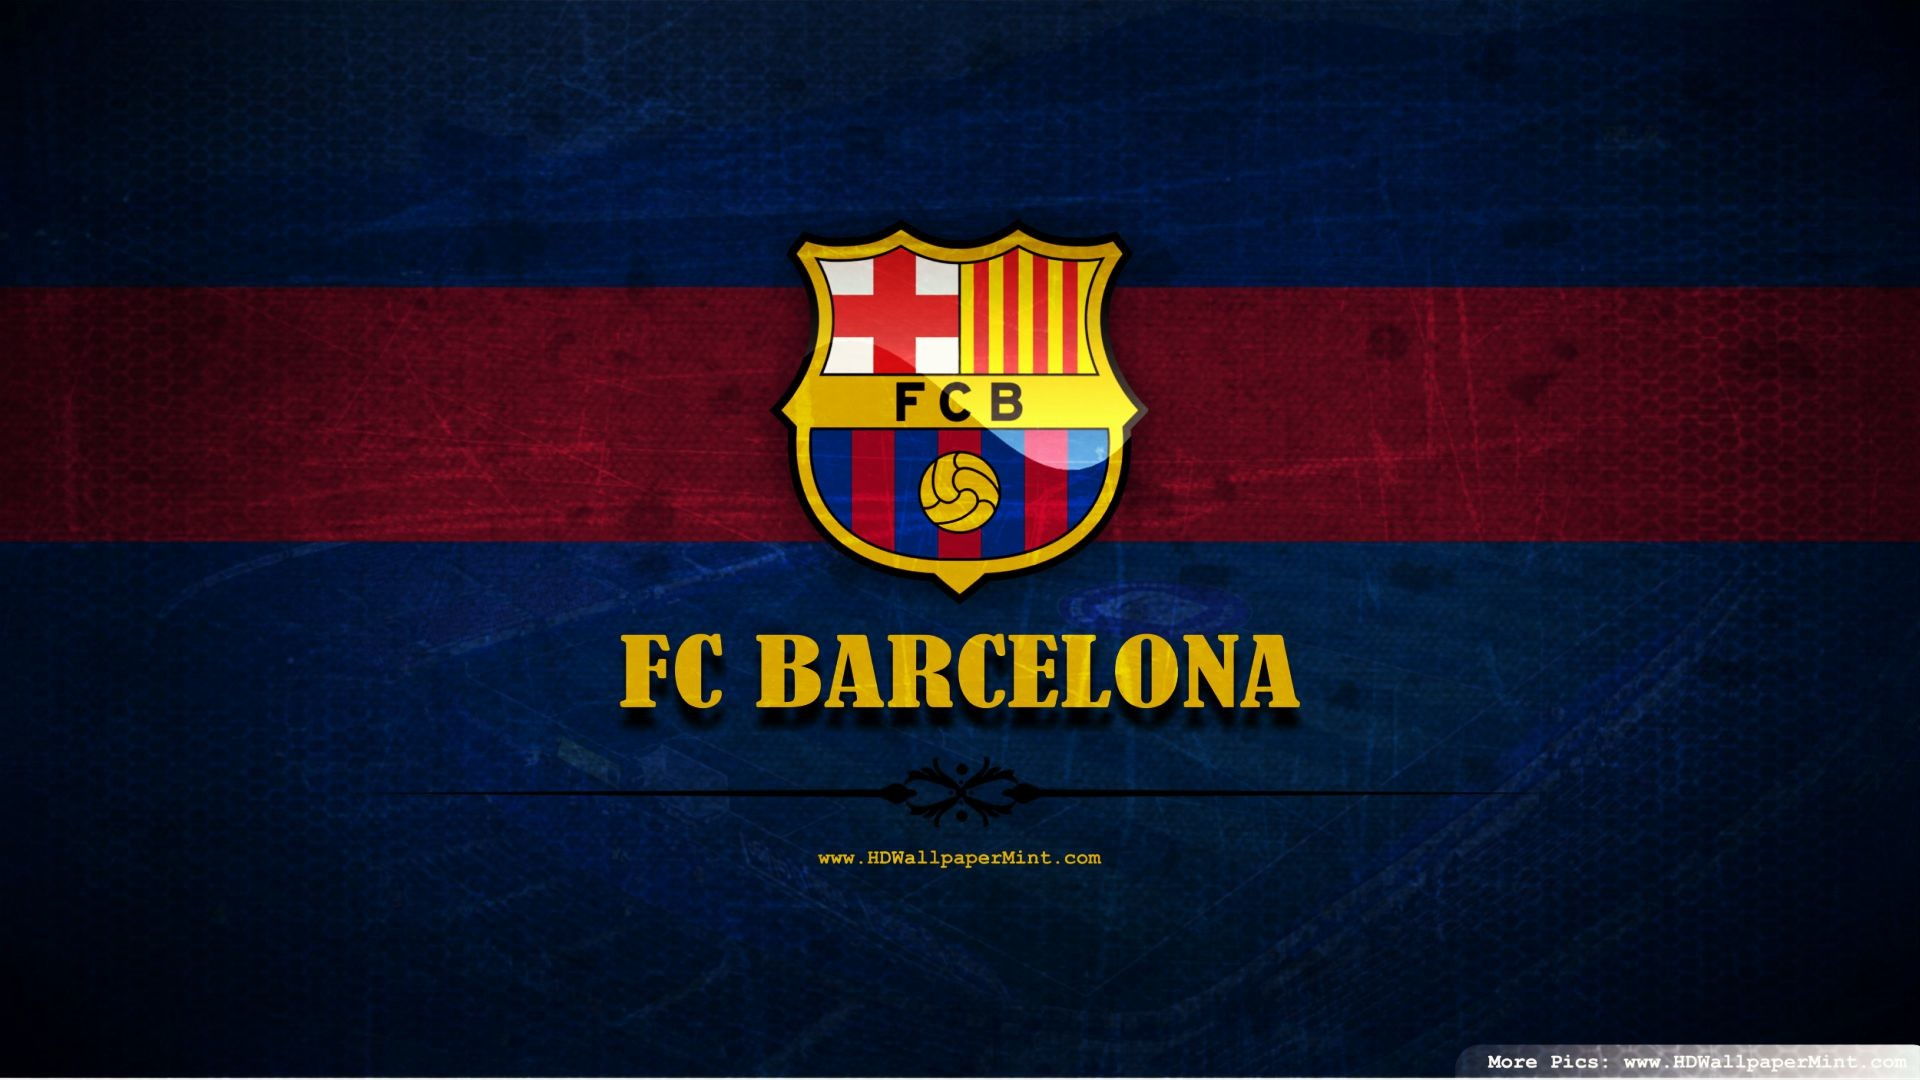 Res: 1920x1080, Fc Barcelona Wallpaper High Quality Resolution